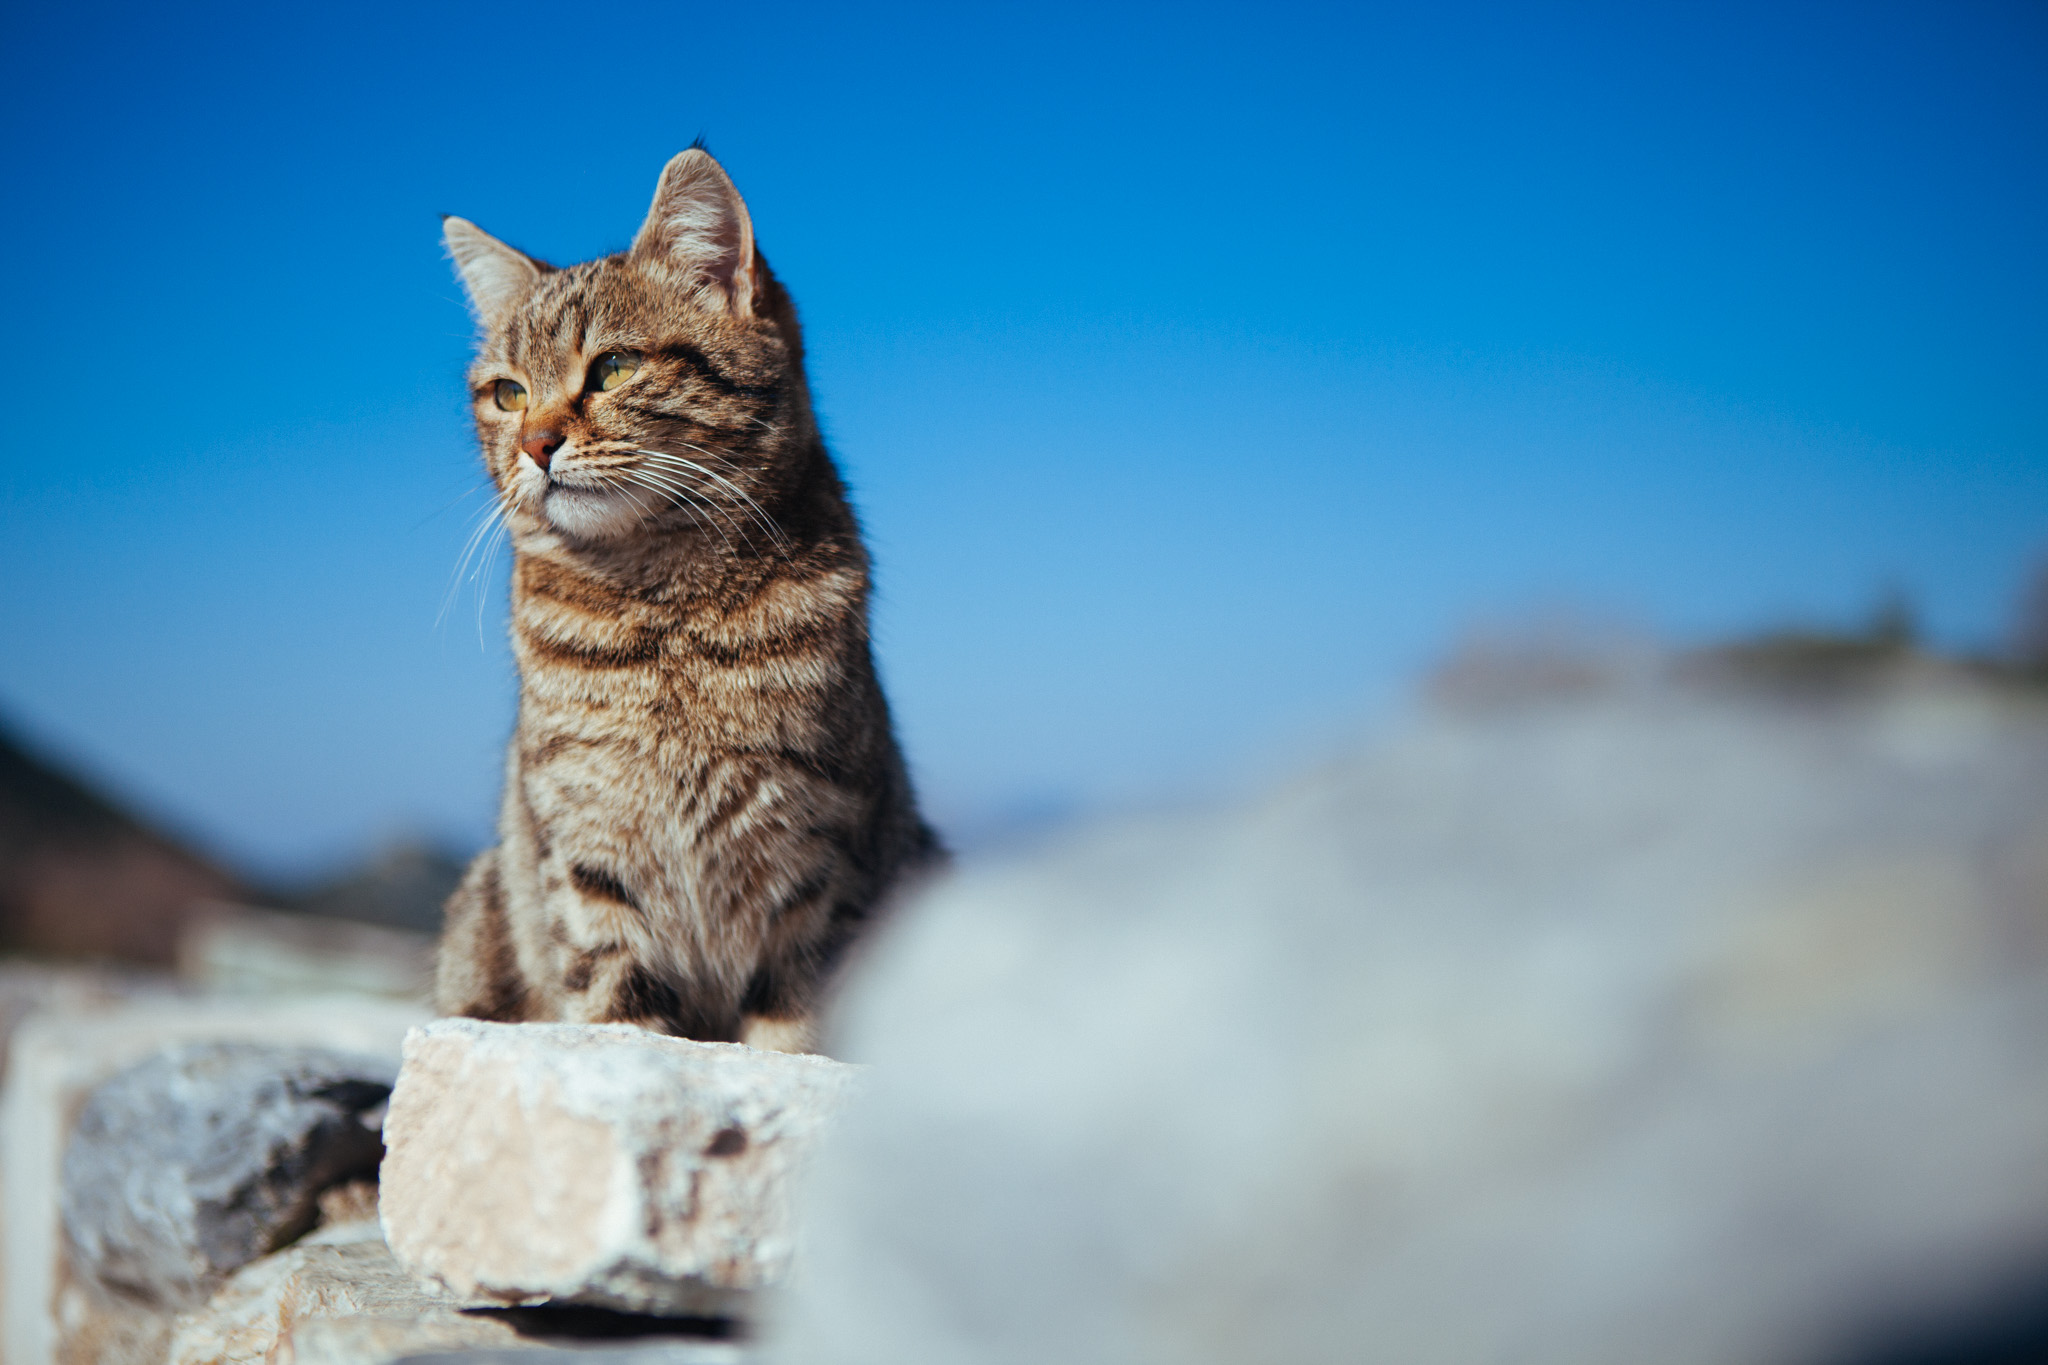 A regal looking cat posing along the ancient ruins of Ephesus.